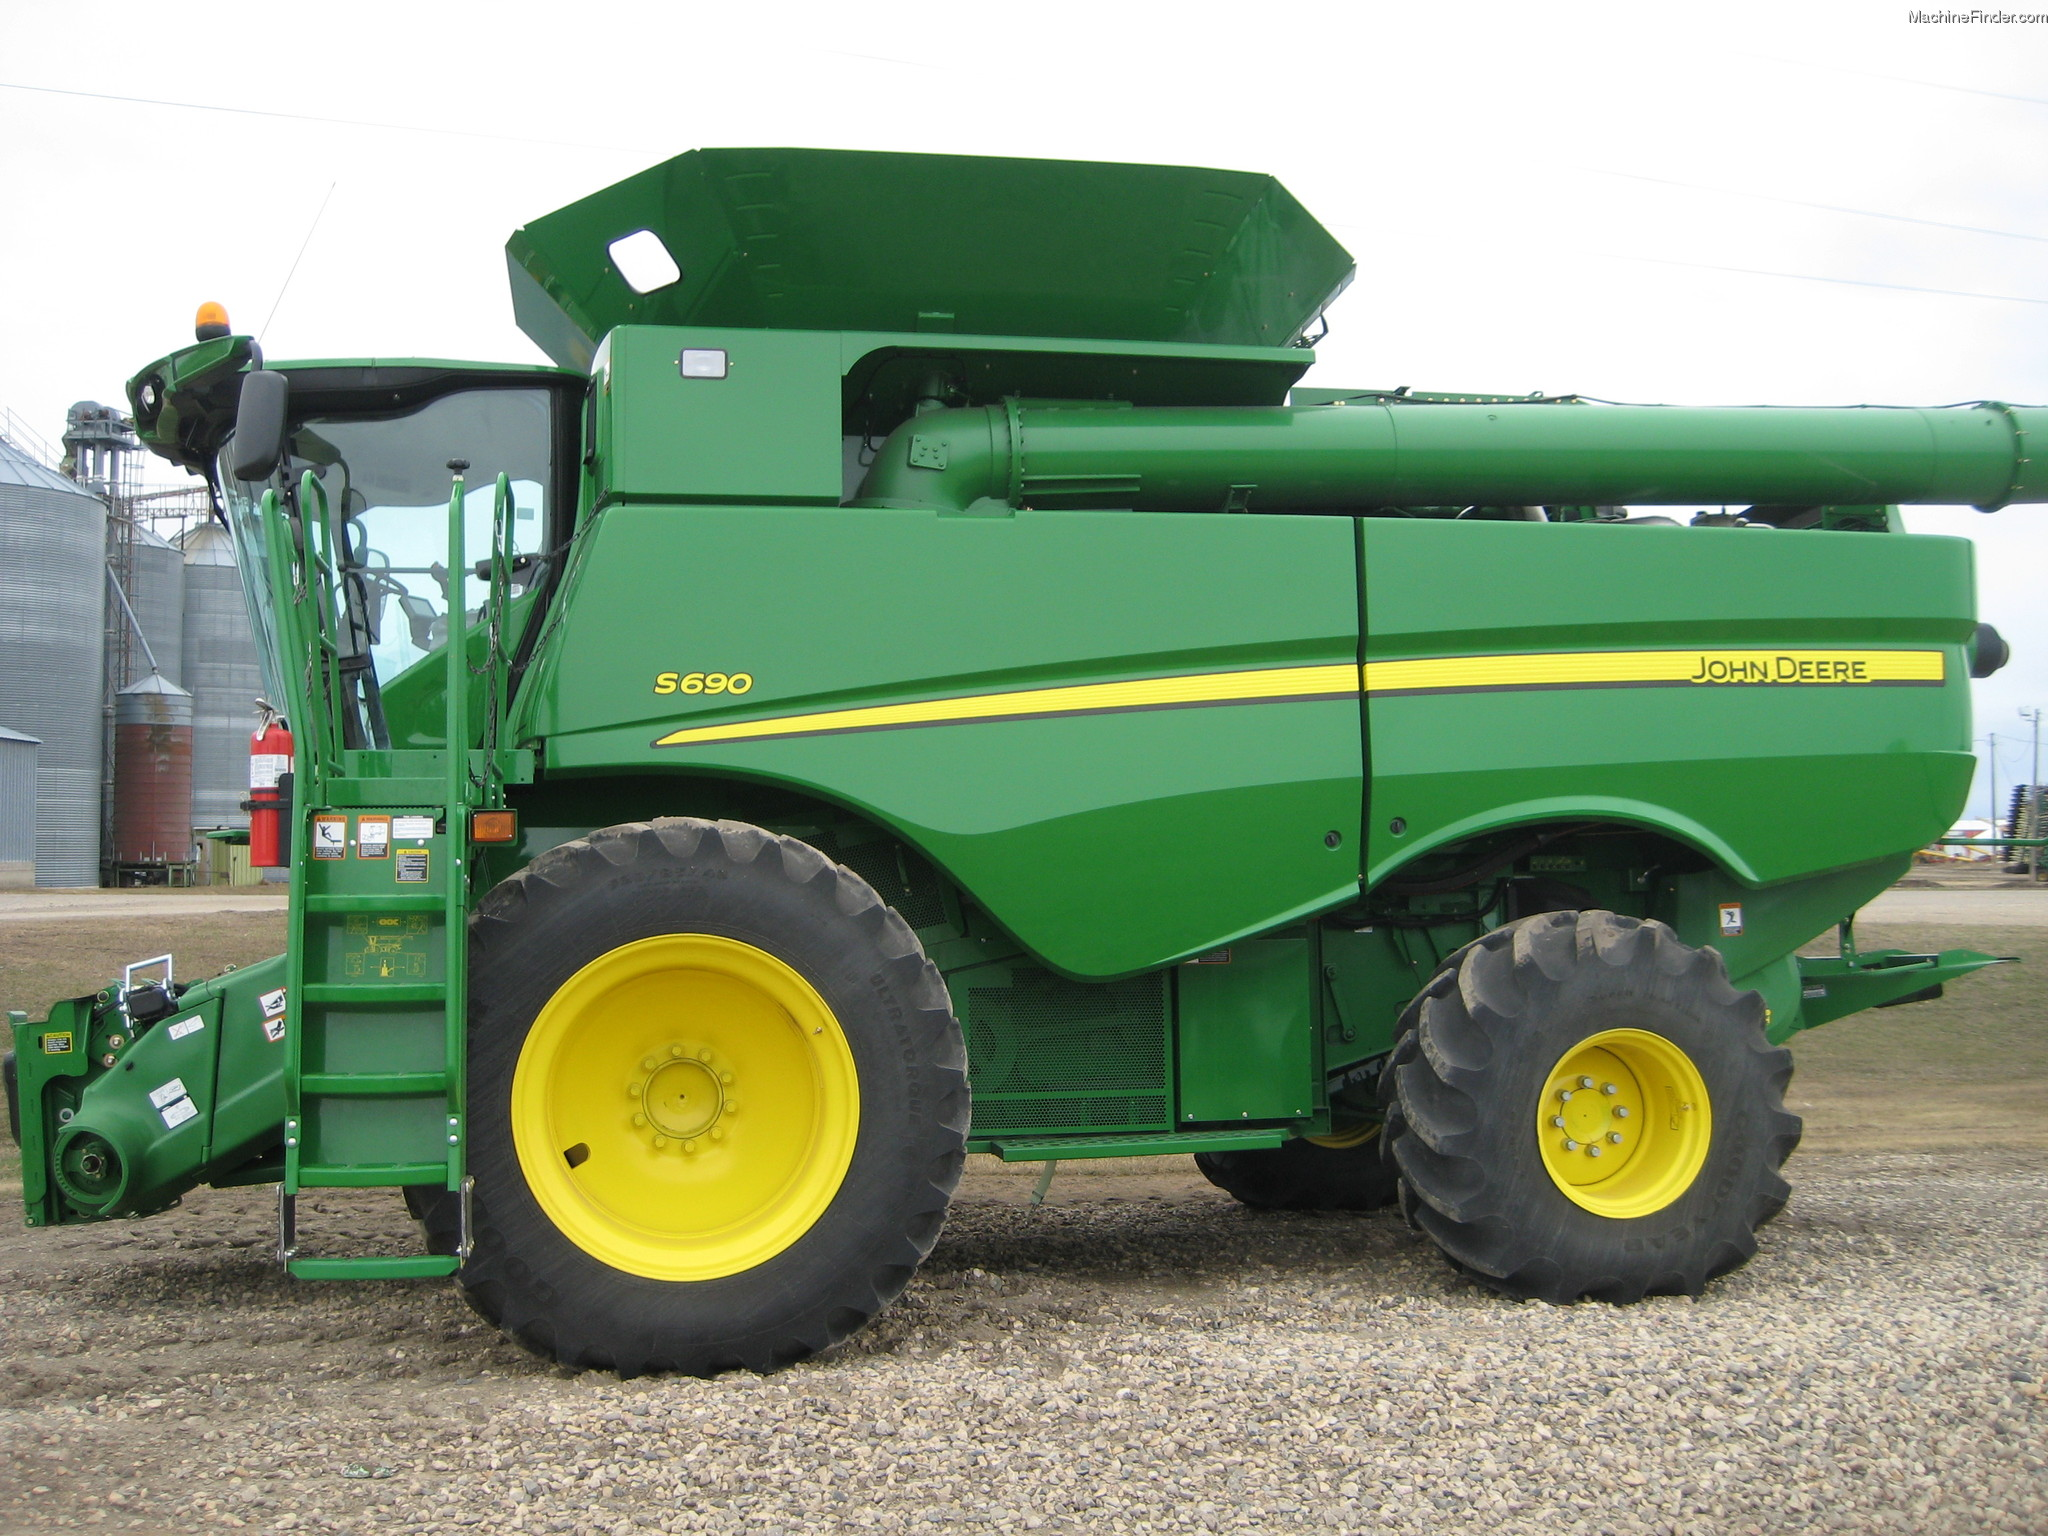 2012 John Deere S690 Combine http://www.machinefinder.com/ww/en-US/machine/2282108